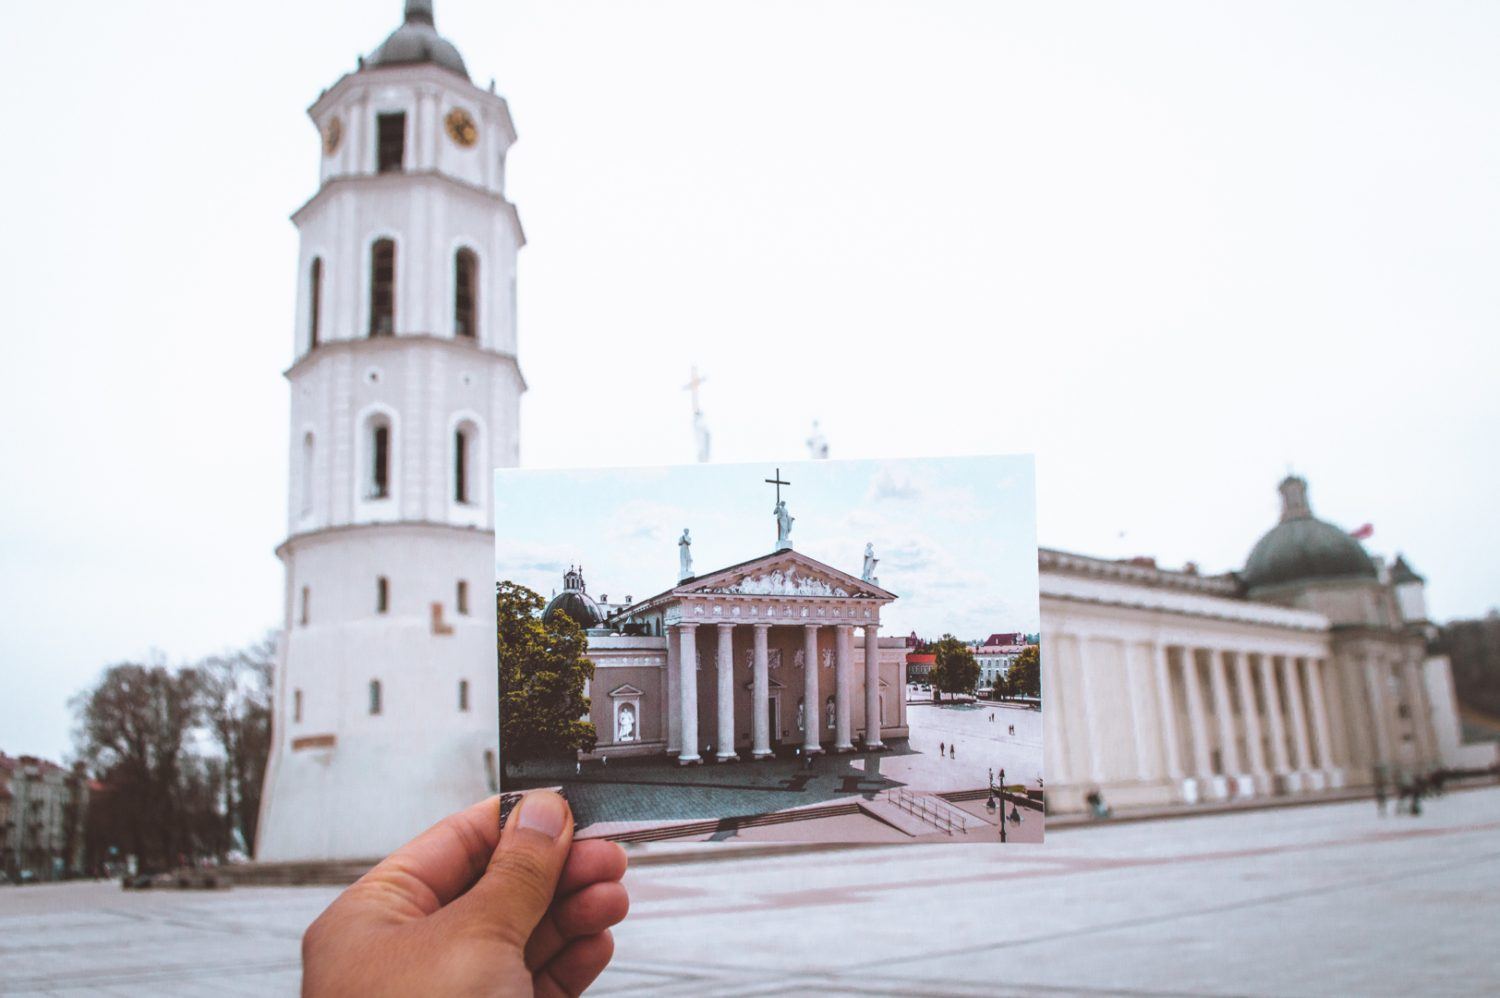 Postcard being held up in Cathedral Square in Vilnius, Lithuania